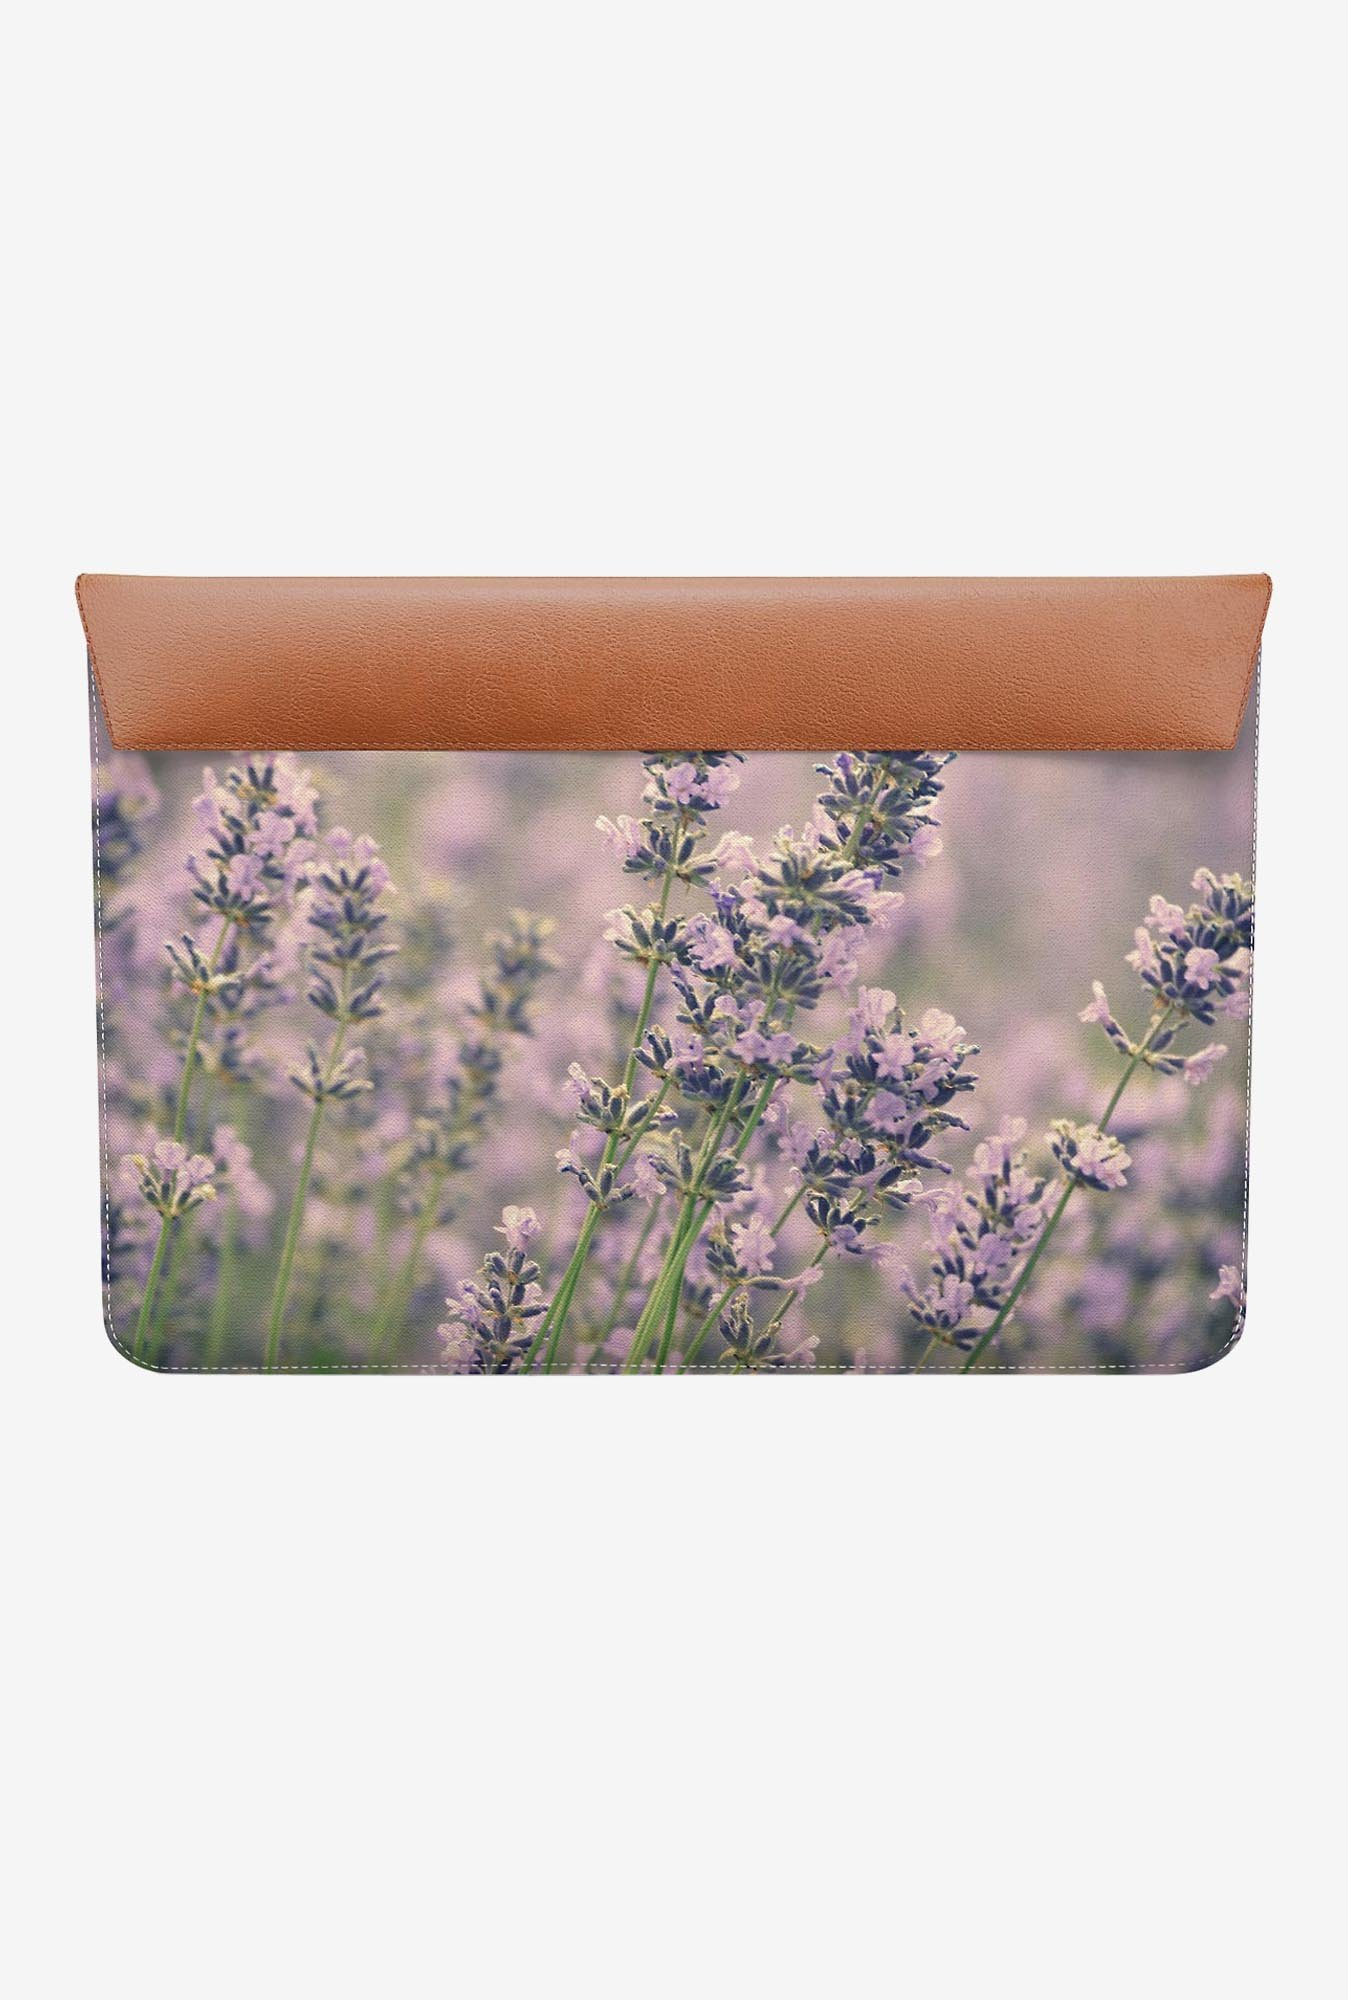 "DailyObjects Smell Blossoms MacBook Pro 13"" Envelope Sleeve"